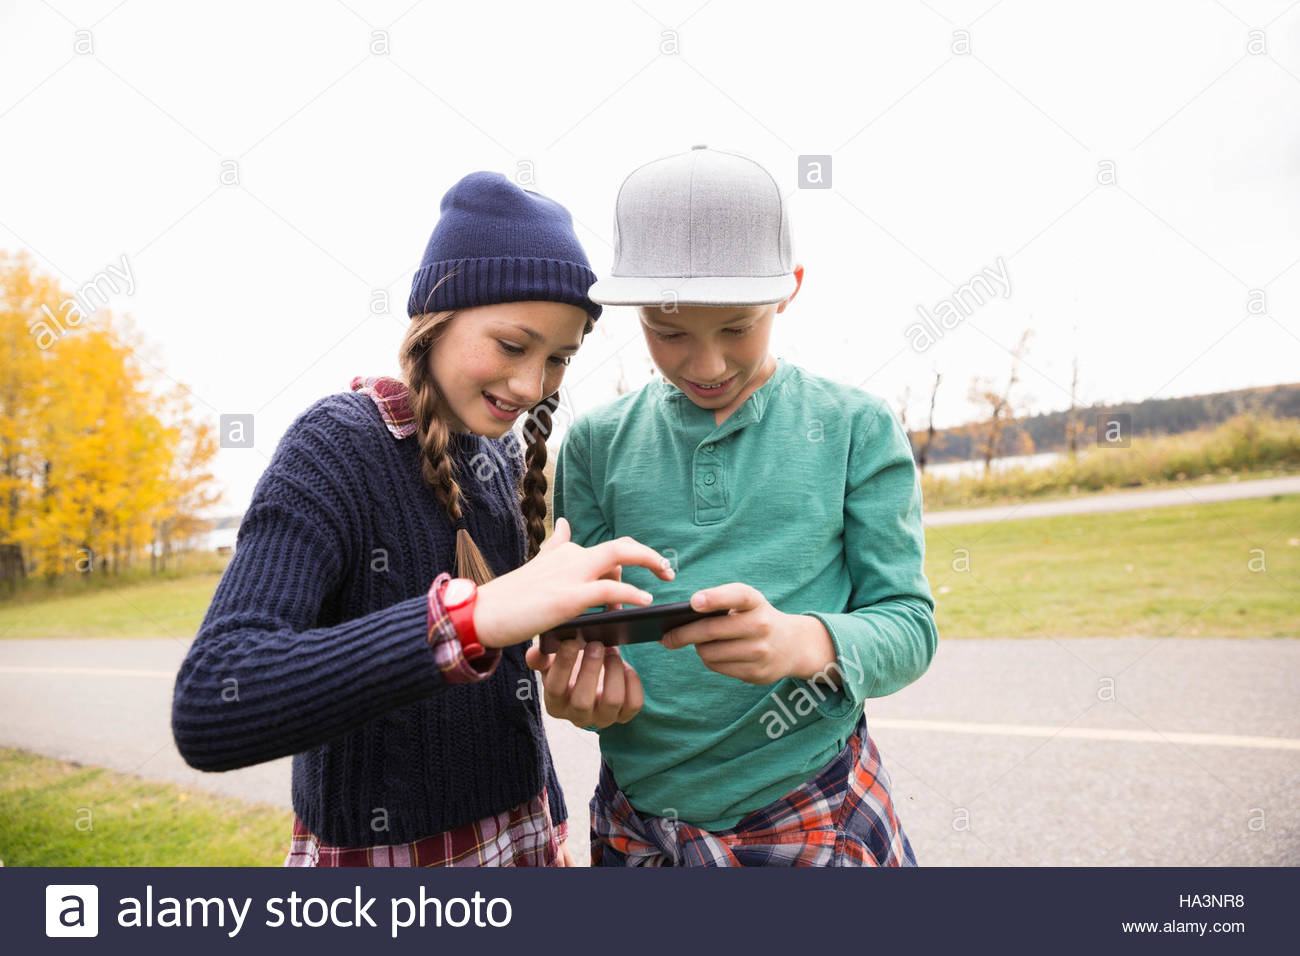 Tween boy and girl texting with cell phone in autumn park - Stock Image